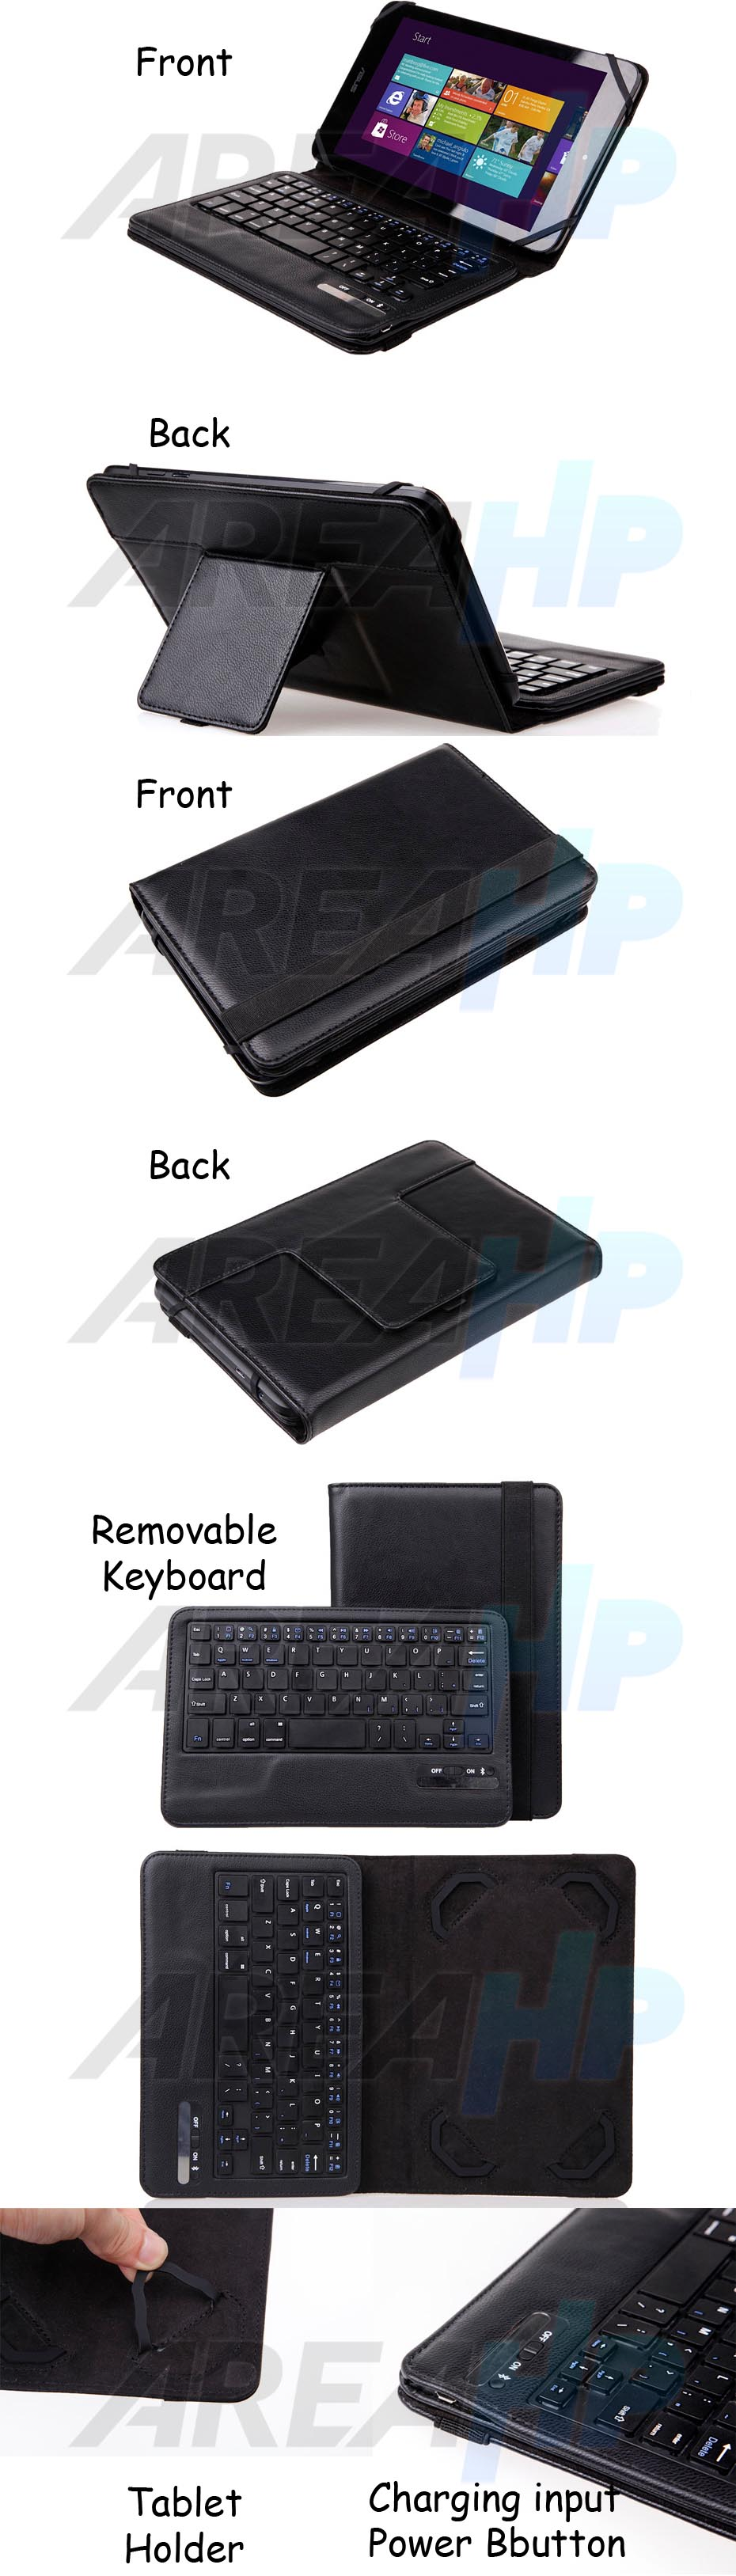 Seenda Universal Keyboard Bluetooth Case for Tablet 11-12 Inch Overview